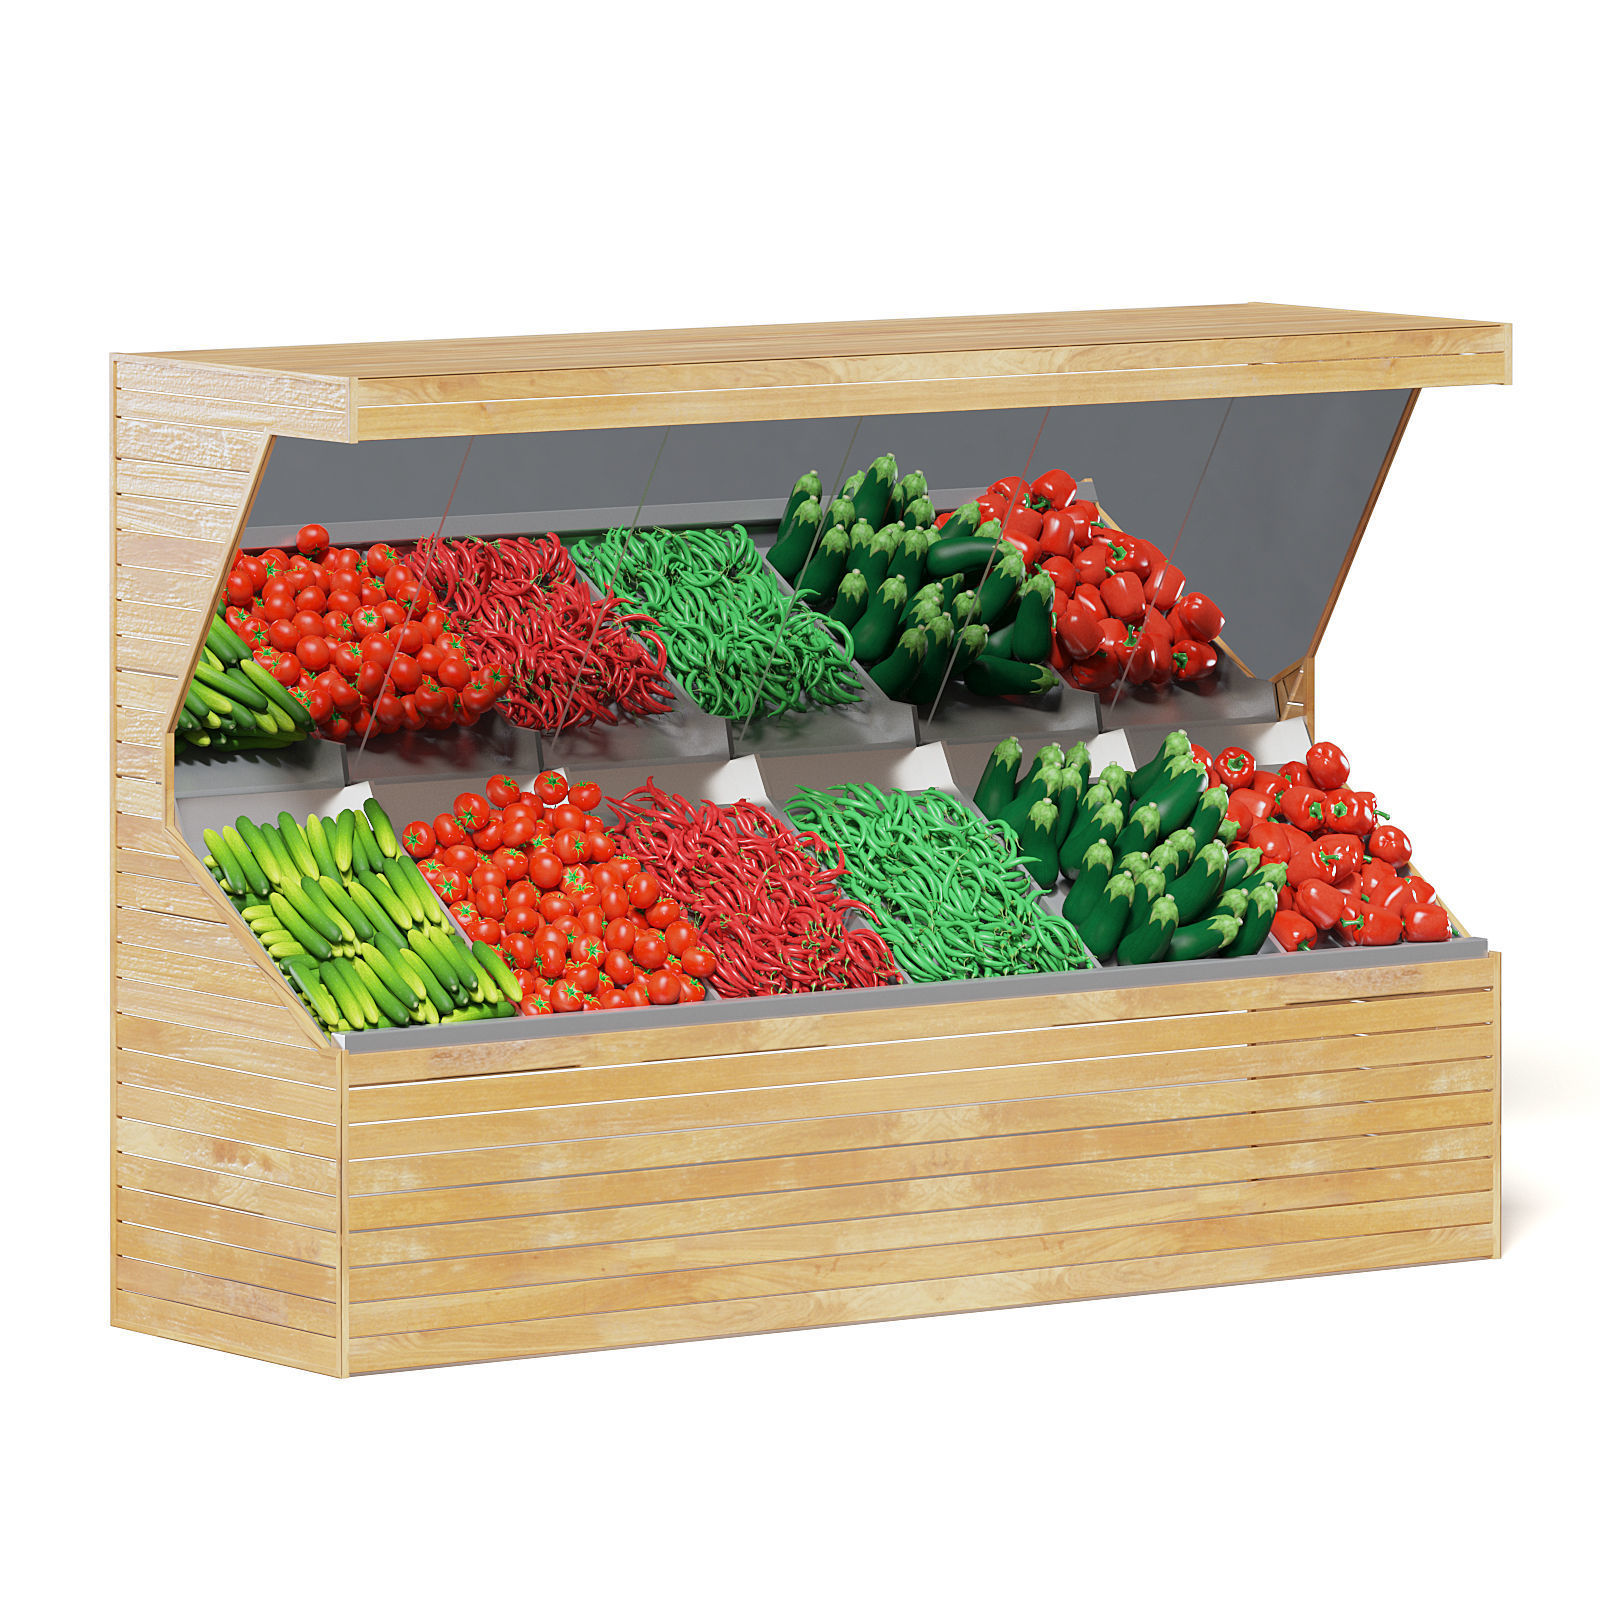 Market Shelf 3D Model - Vegetables